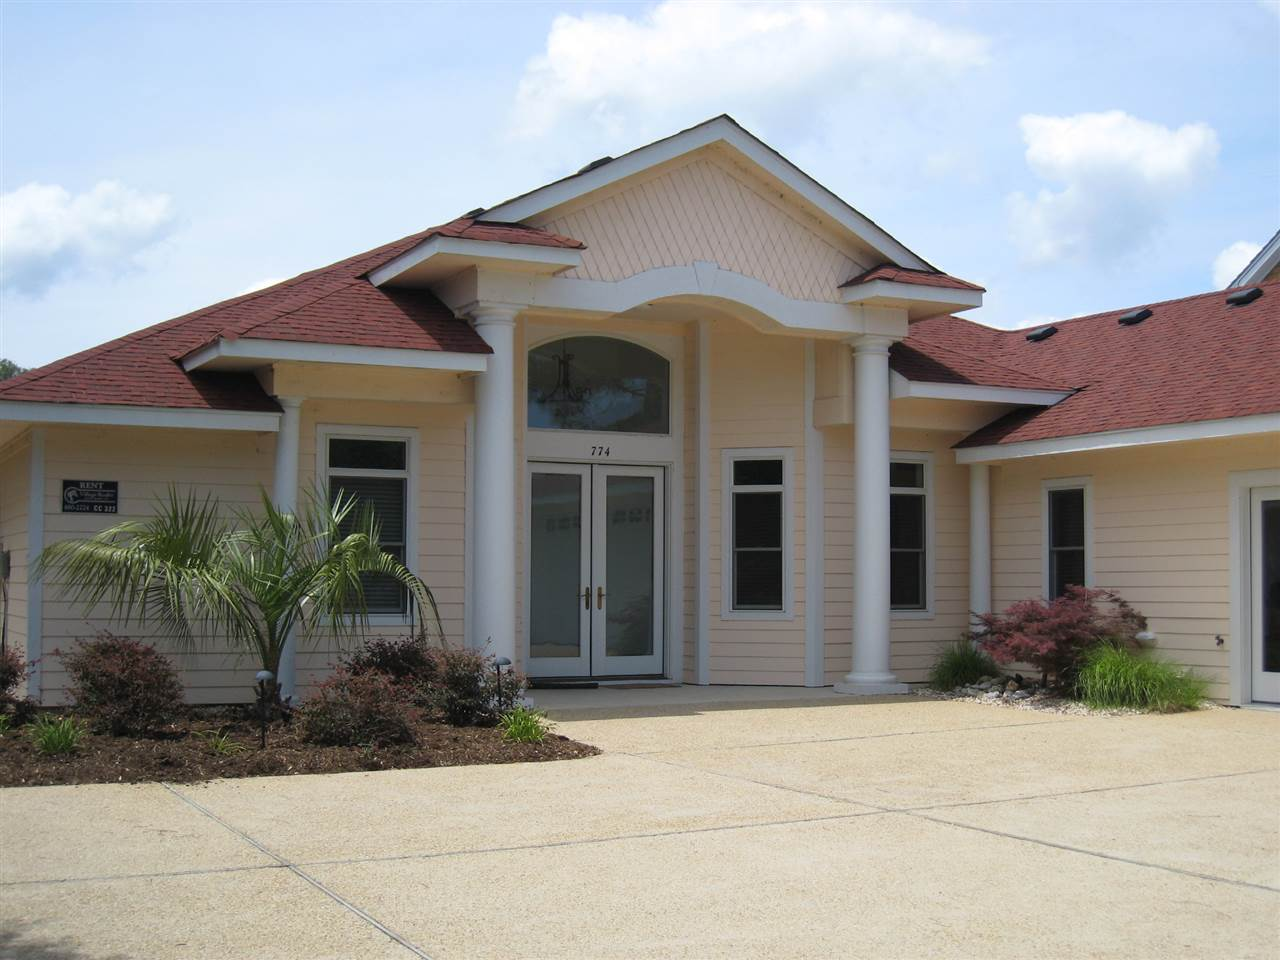 774 Hunt Club Drive, Corolla, NC 27927, 4 Bedrooms Bedrooms, ,4 BathroomsBathrooms,Residential,For sale,Hunt Club Drive,95718